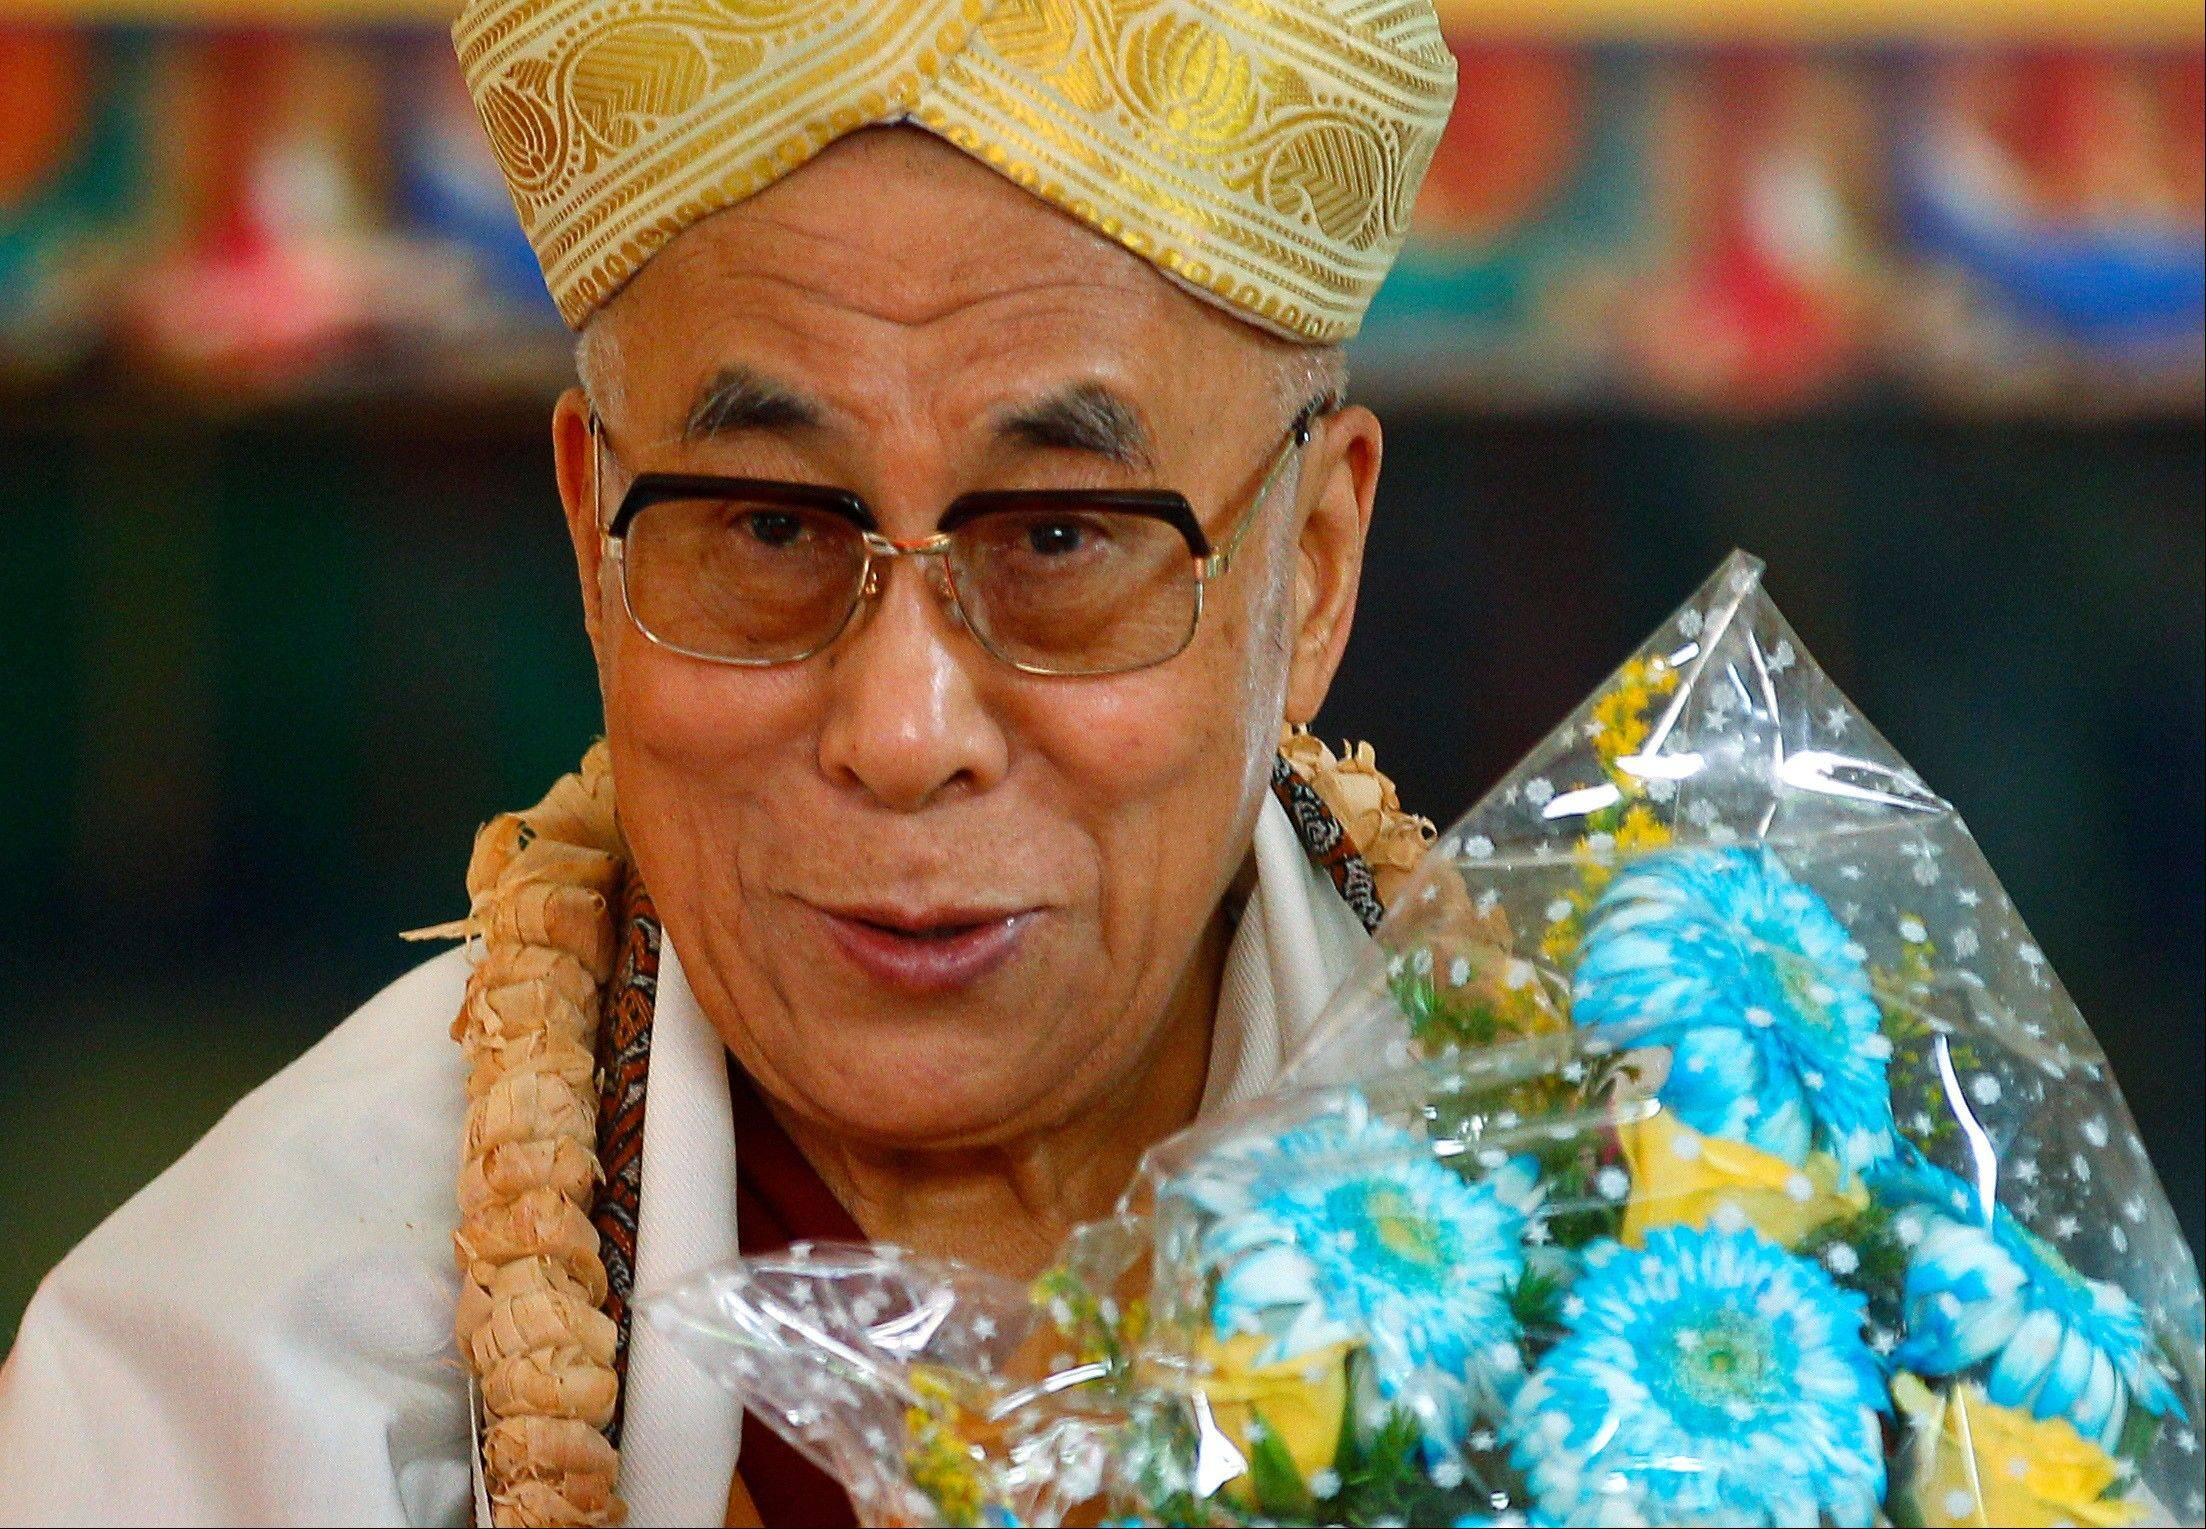 Tibetan spiritual leader the Dalai Lama reacts after he was presented a headgear and a bouquet of flowers during an event organized to celebrate his 78th birthday at a Tibetan Buddhist monastery in Bylakuppe, about 137 miles southwest of Bangalore, India, Saturday, July 6. Speaking after an interfaith meeting, he said 150,000 Tibetans living abroad represent �six million Tibetans (in China) who have no freedom or opportunity to express what they feel.�